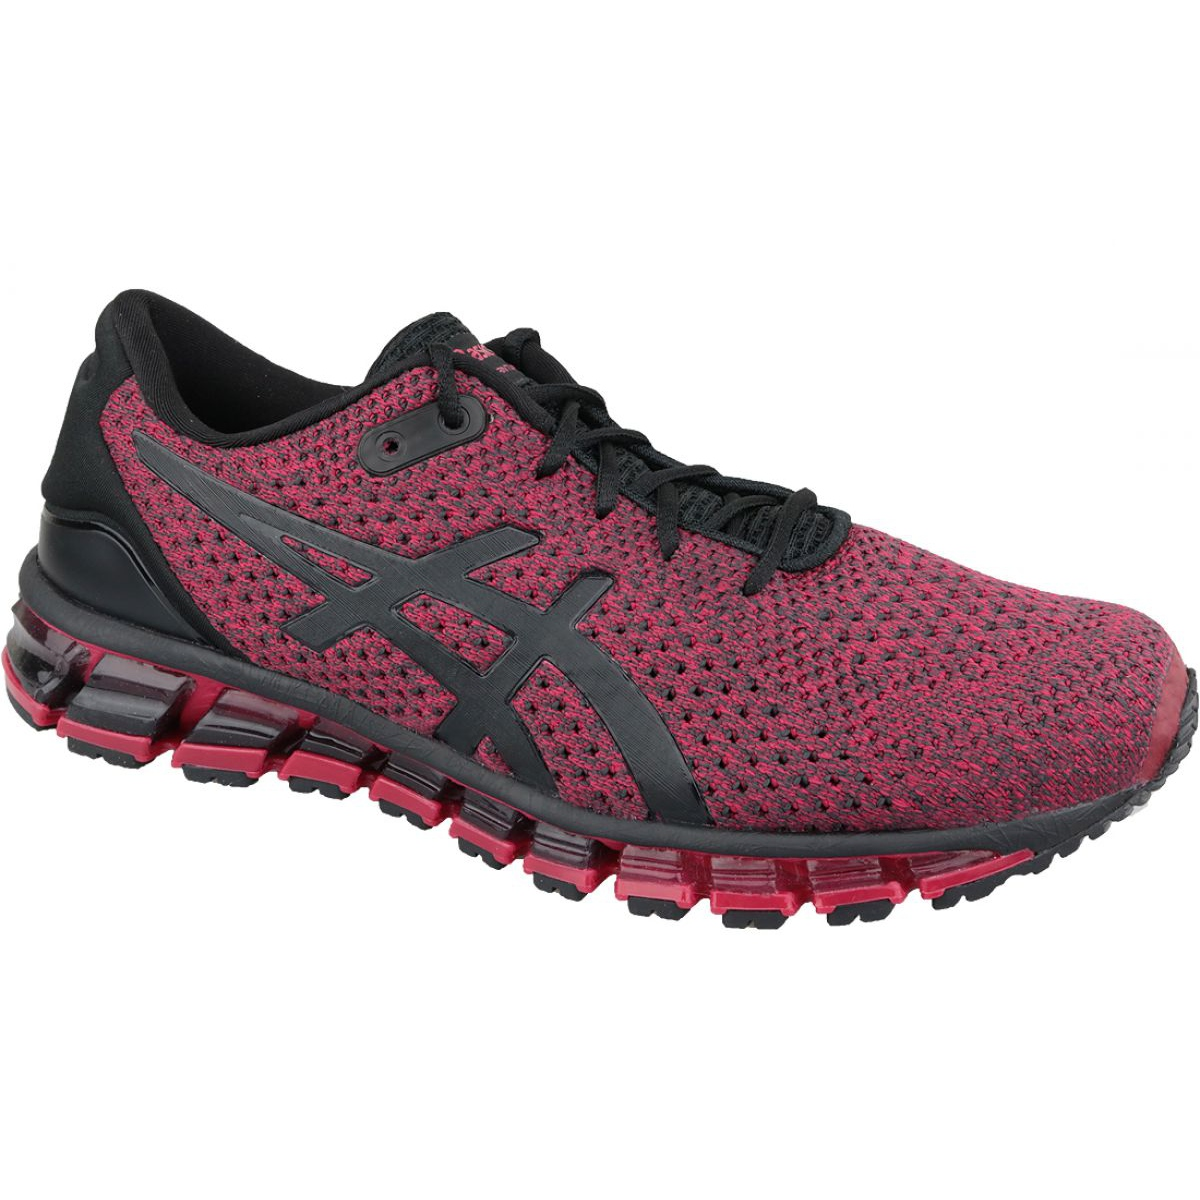 the best attitude 1c4c9 45cdb Red Running shoes Asics Gel-Quantum 360 Knit 2 M T8G3N-001